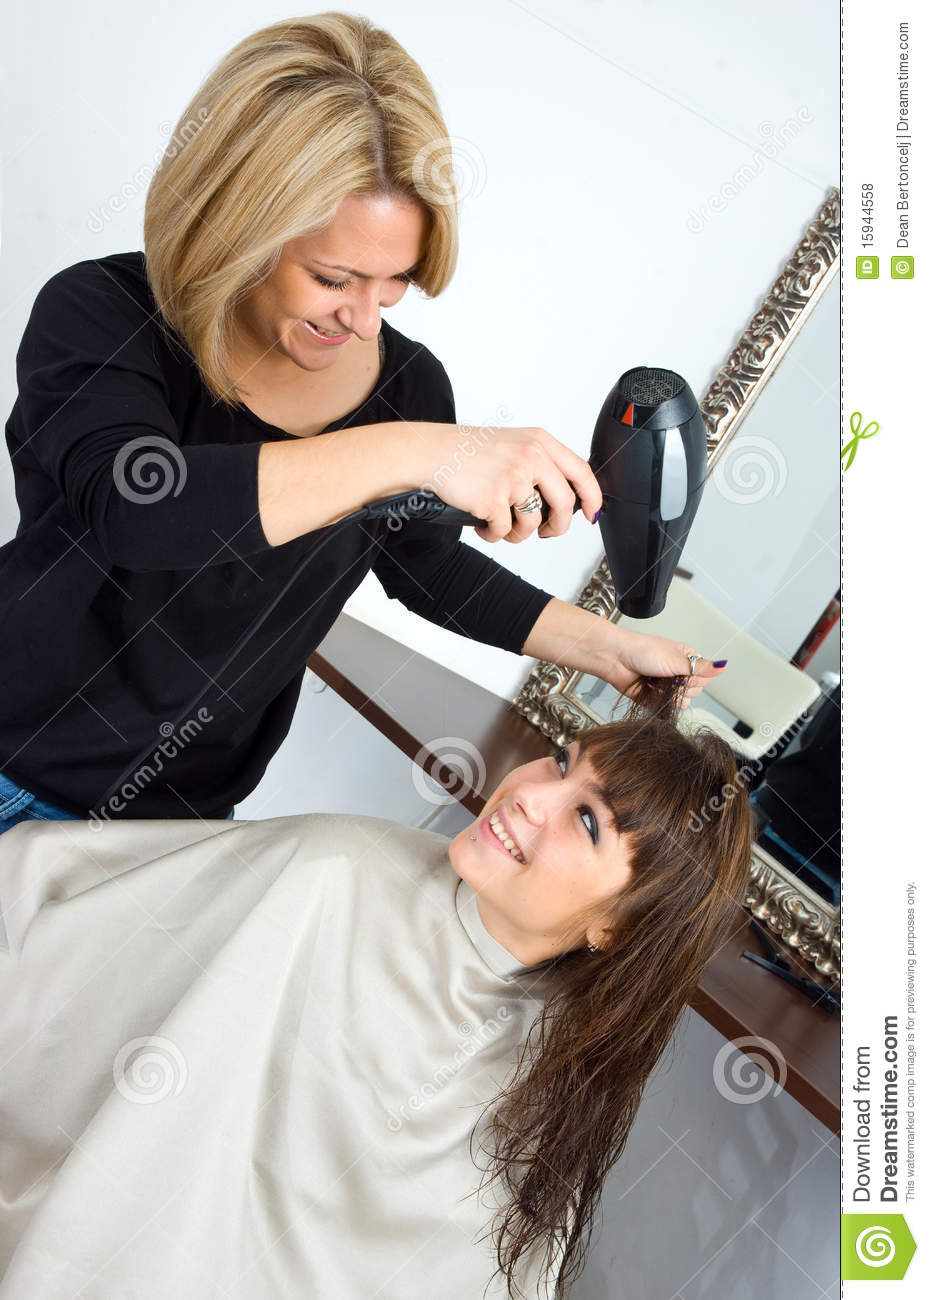 Scene In Hair Salon Stock Photo Image Of Hairdressing